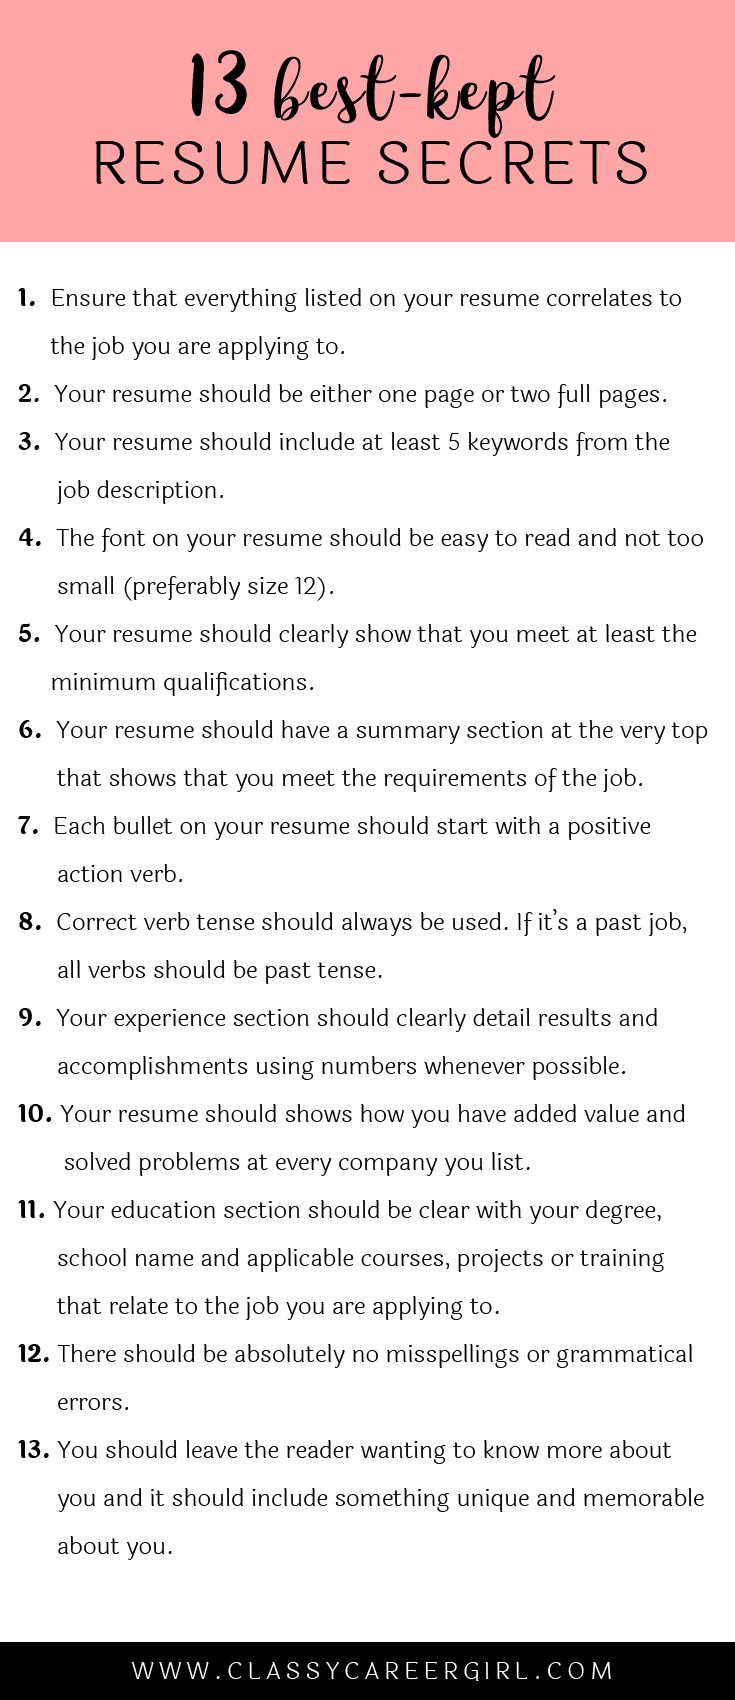 Opposenewapstandardsus  Sweet  Ideas About Resume On Pinterest  Cv Format Resume Cv And  With Exciting Some Hiring Managers Will Toss Your Resume Out If You Dont Know These  With Archaic Resume Waiter Also Actions Words For Resume In Addition Patient Care Technician Resume Sample And How To Write College Resume As Well As Cio Resumes Additionally Resume For Hospital Job From Pinterestcom With Opposenewapstandardsus  Exciting  Ideas About Resume On Pinterest  Cv Format Resume Cv And  With Archaic Some Hiring Managers Will Toss Your Resume Out If You Dont Know These  And Sweet Resume Waiter Also Actions Words For Resume In Addition Patient Care Technician Resume Sample From Pinterestcom